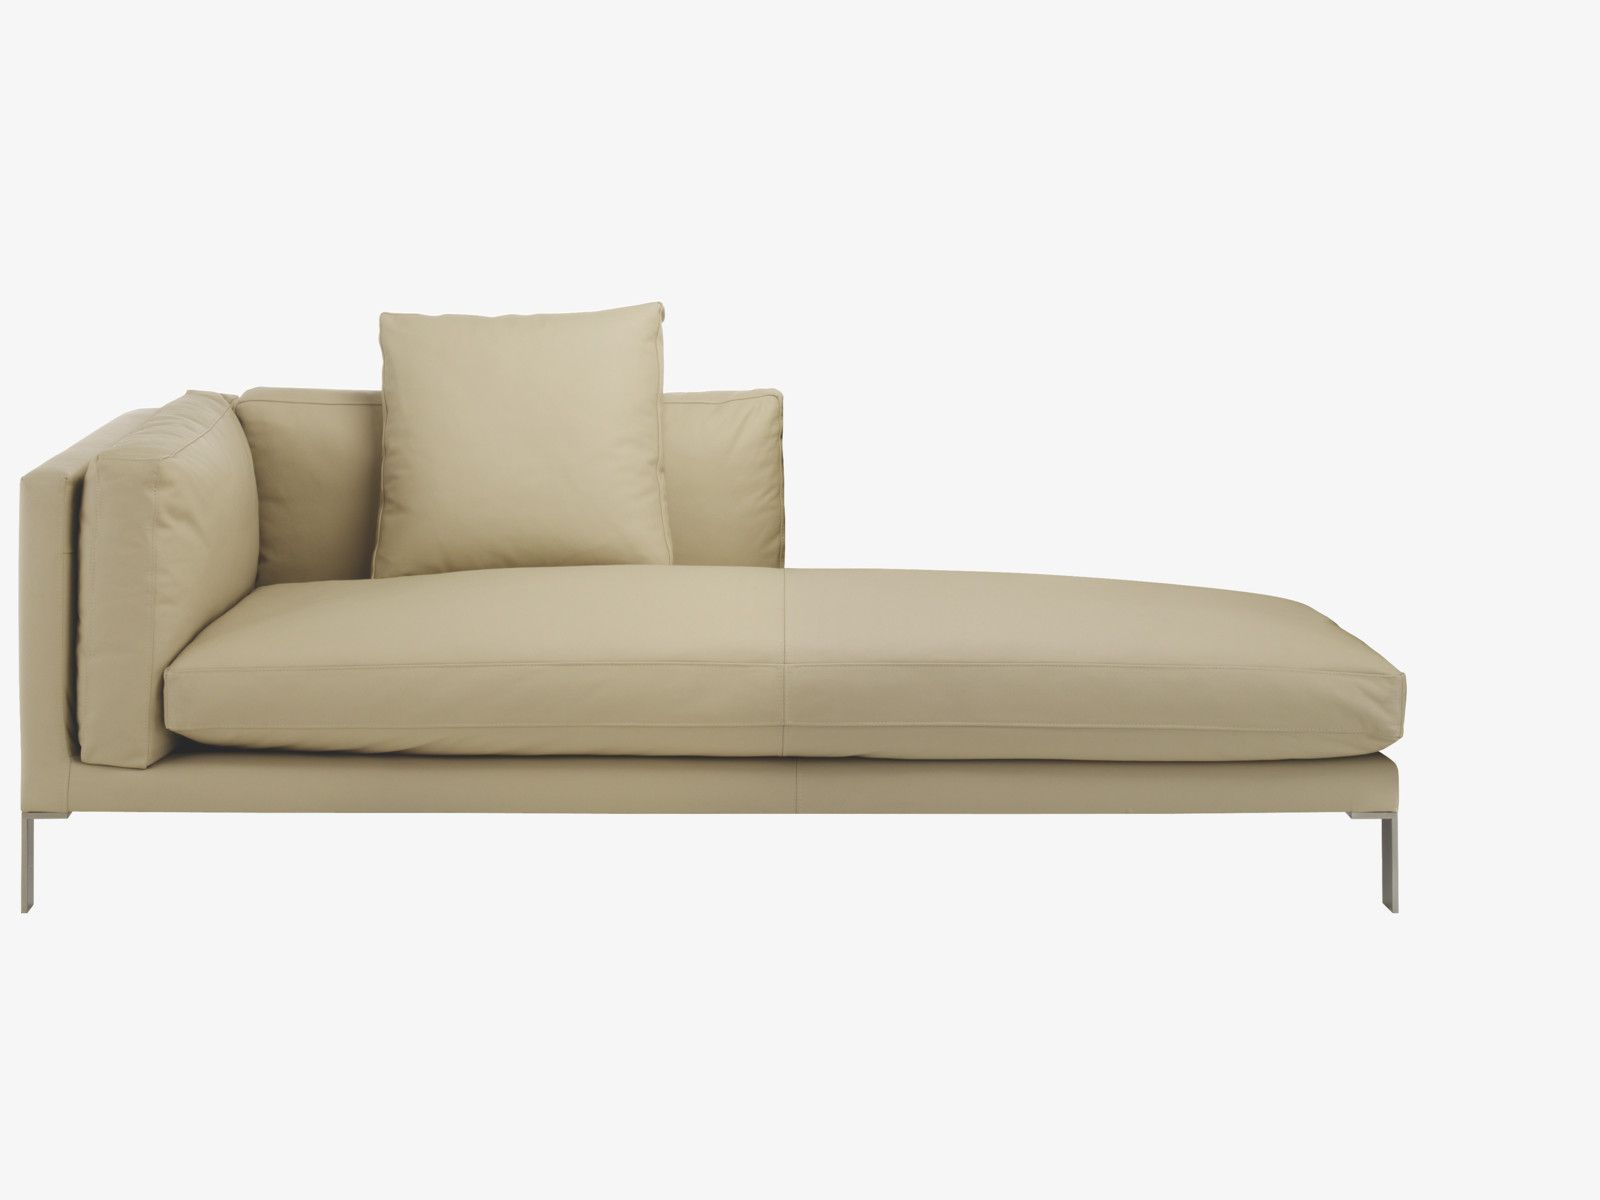 newman neutral leather cream leather right arm chaise longue habitatuk les autres choses. Black Bedroom Furniture Sets. Home Design Ideas